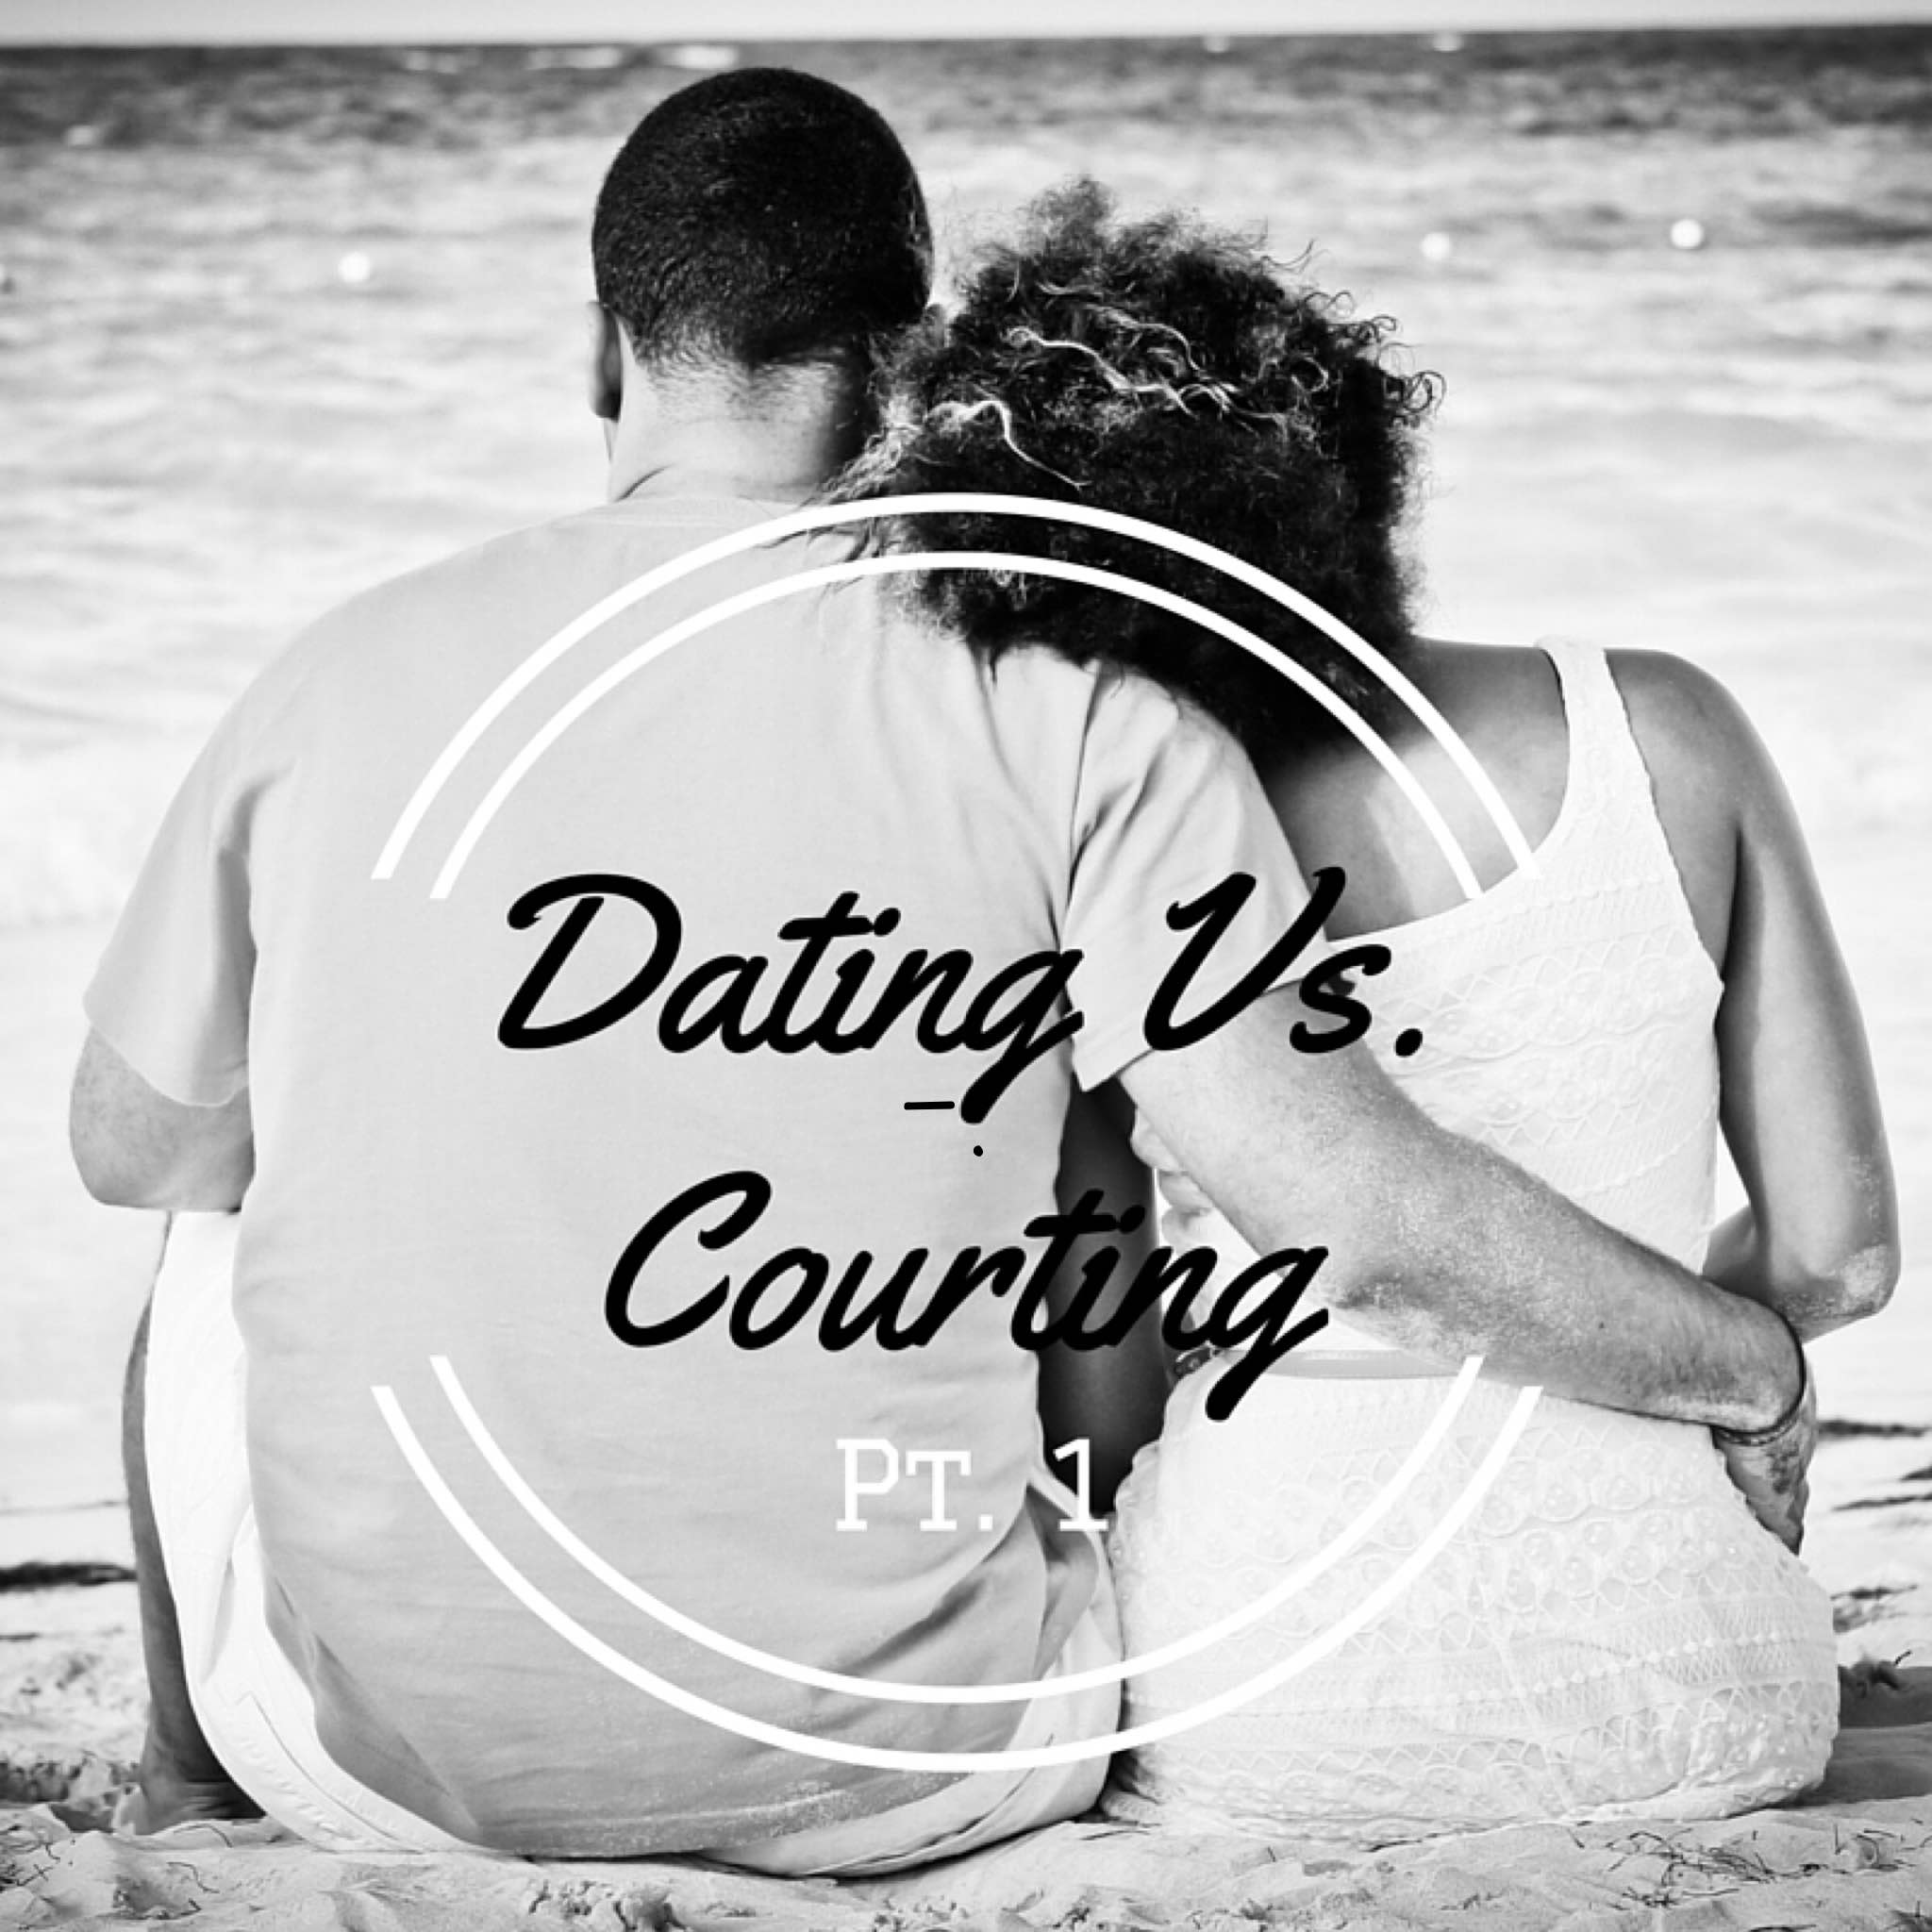 Meaning of courtship and dating